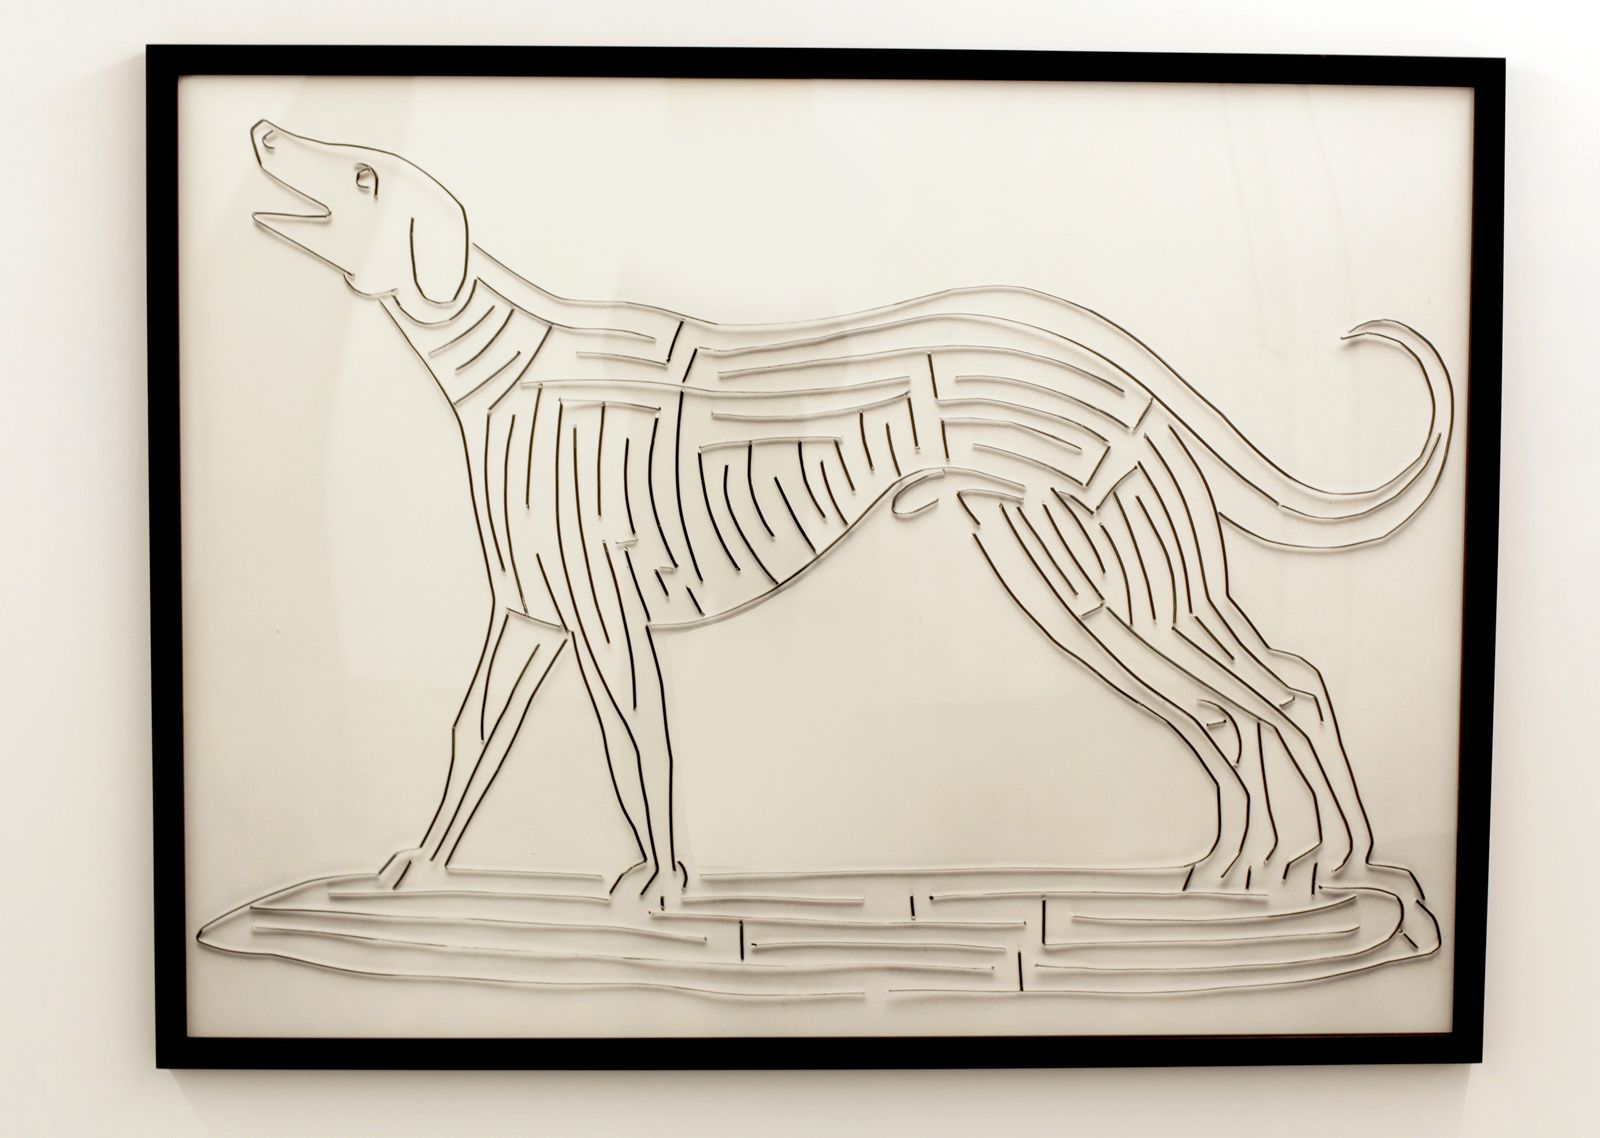 """Dog, after Francesco Segalla"", 2001 de Vik MUNIZ - Courtesy Galerie XIPPAS Paris © Photo Éric Simon"